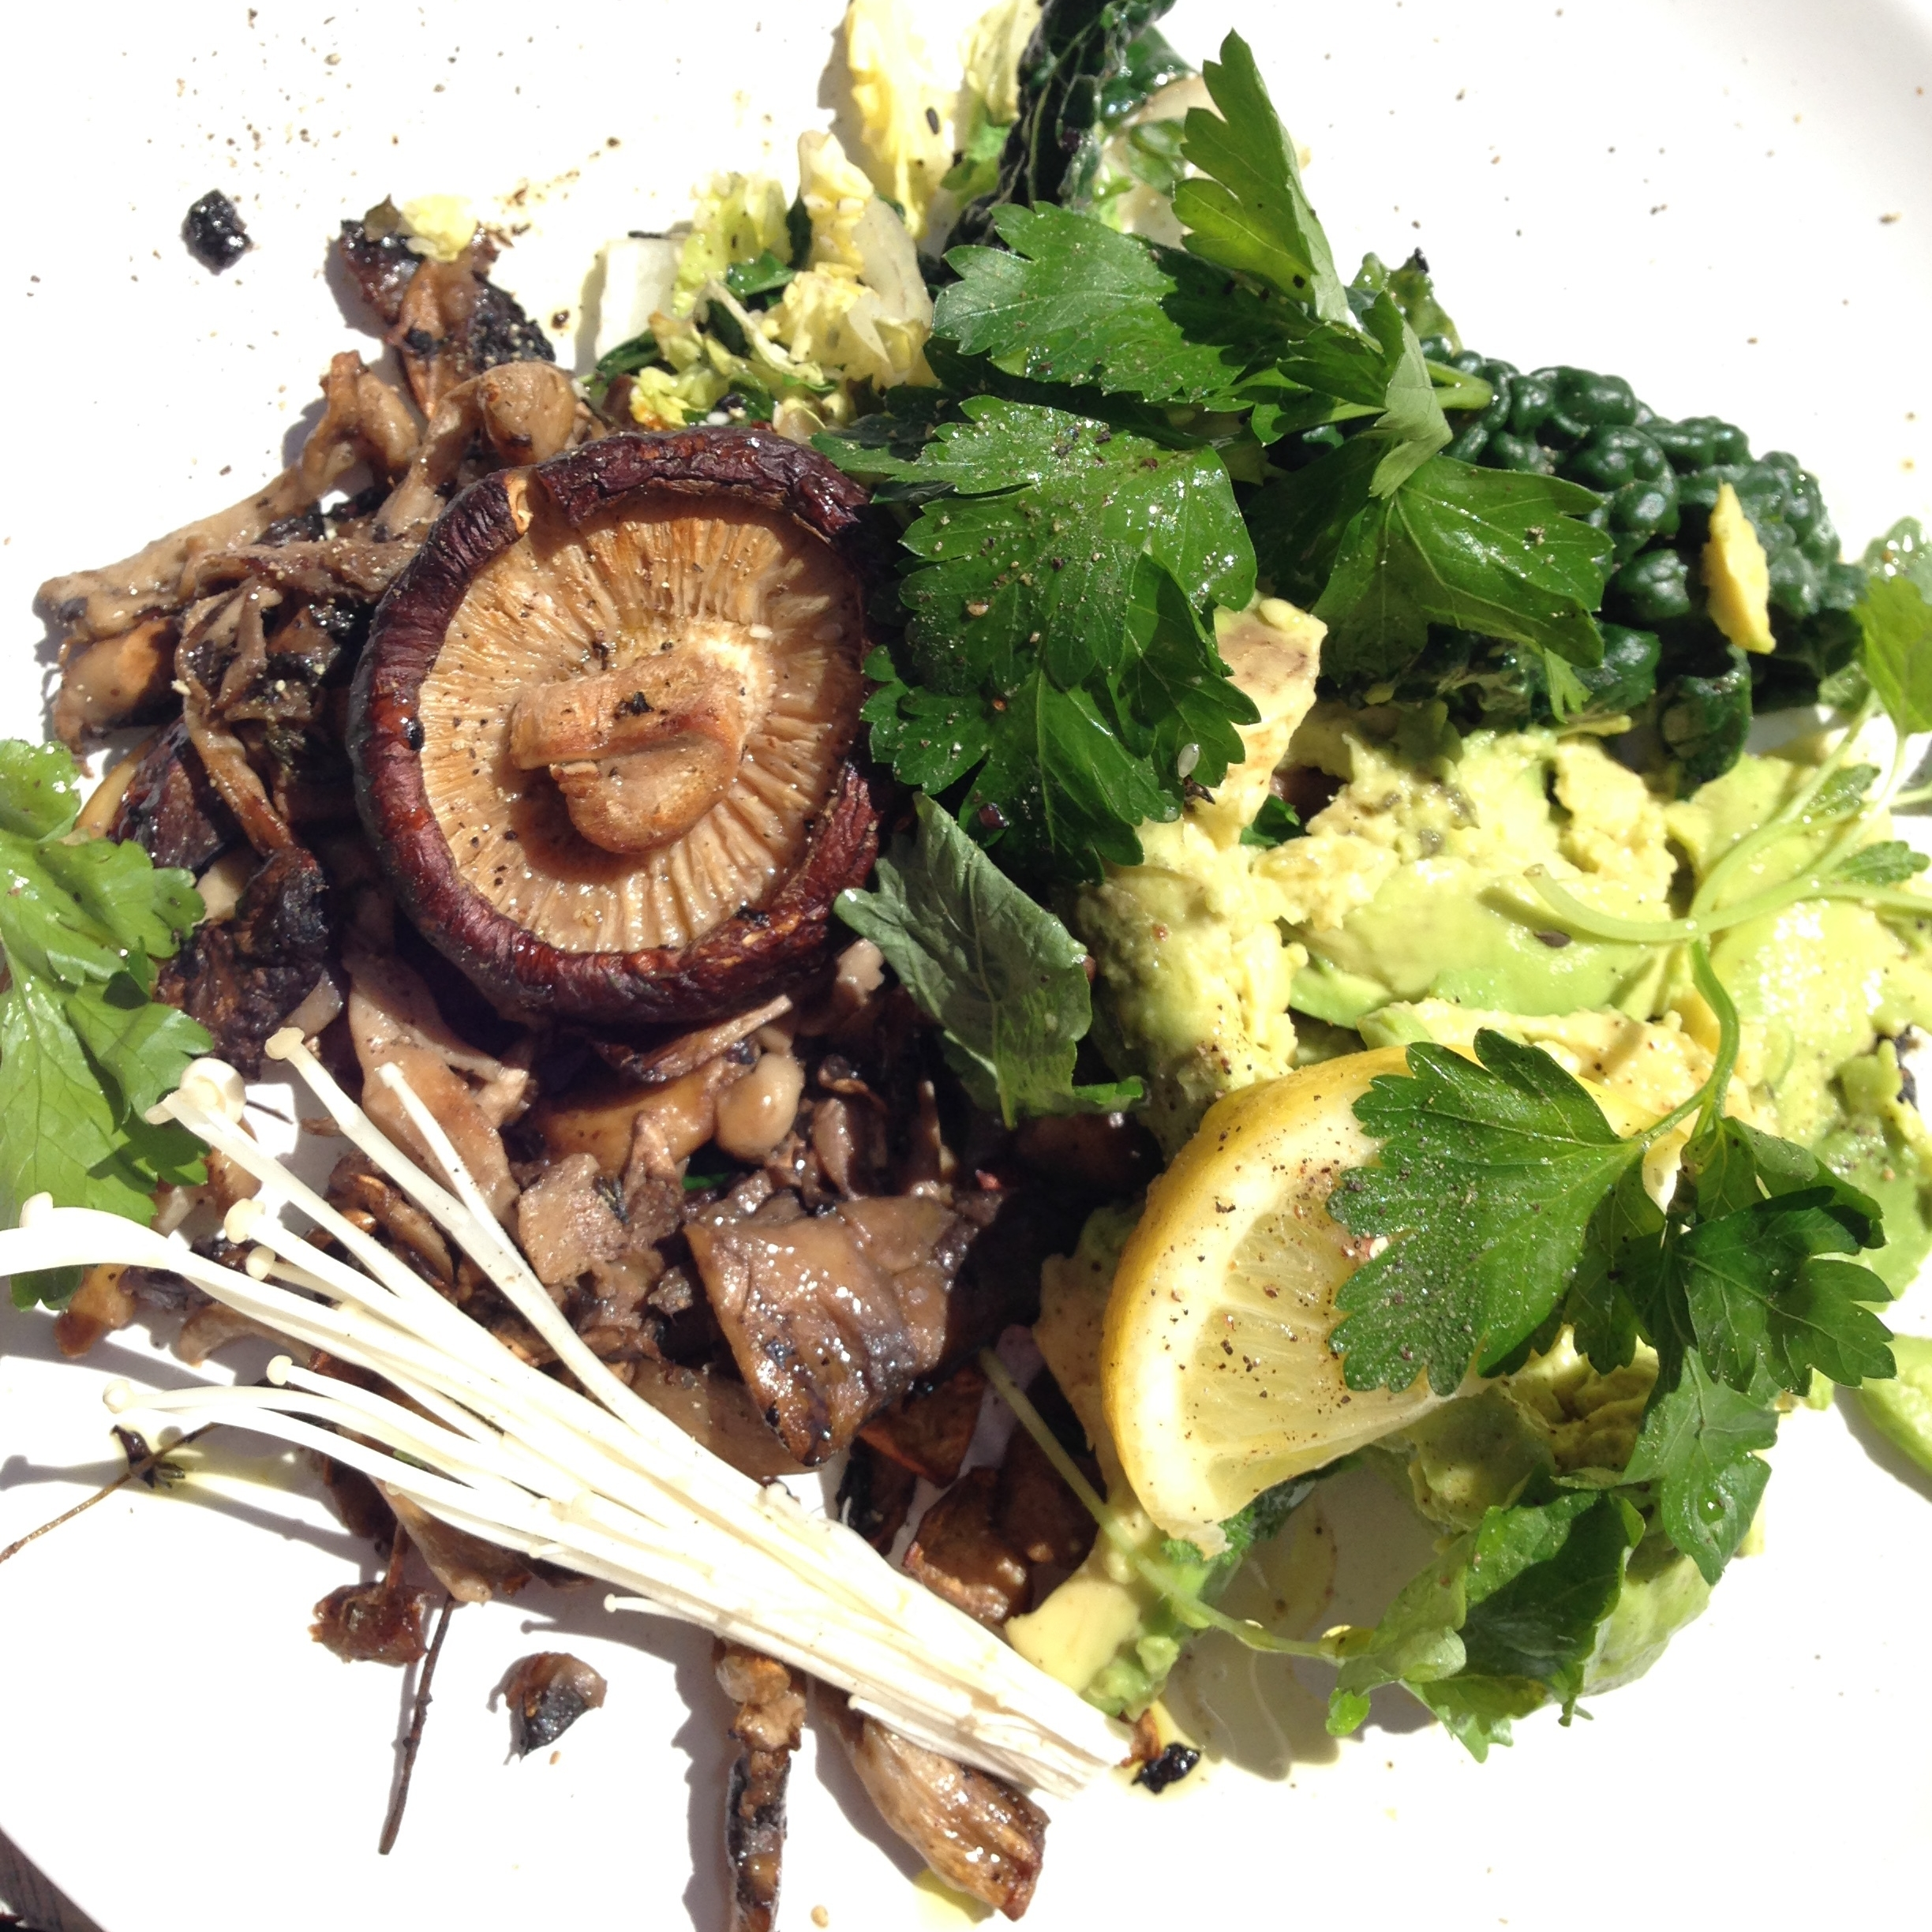 Stimulatte: Assorted mushrooms, avocado and winter green